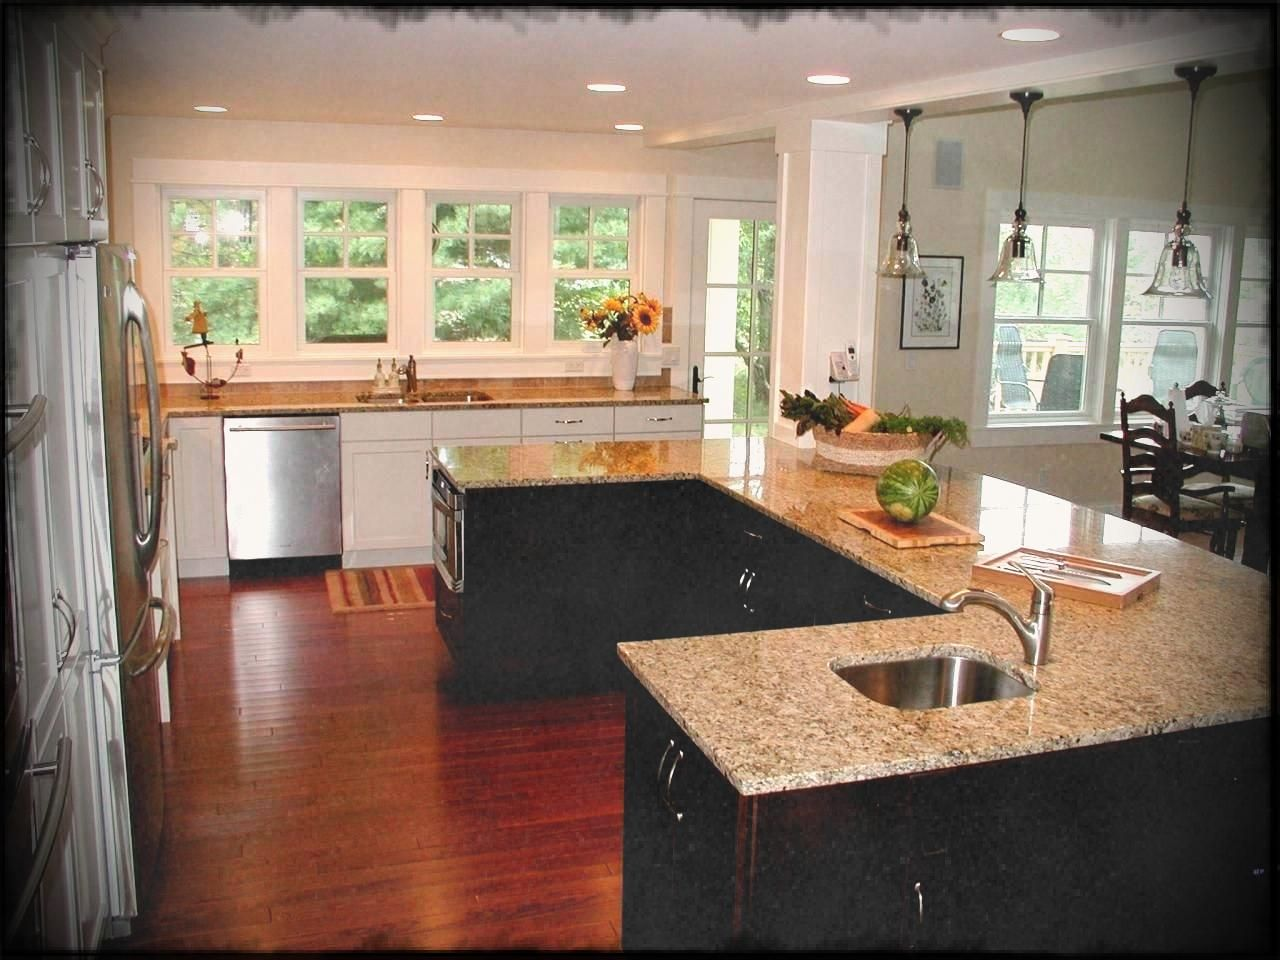 Kitchen Island Layouts U Shaped Layout Options Size Peninsula Kitchen Design Kitchen Layout Small Kitchen Layouts